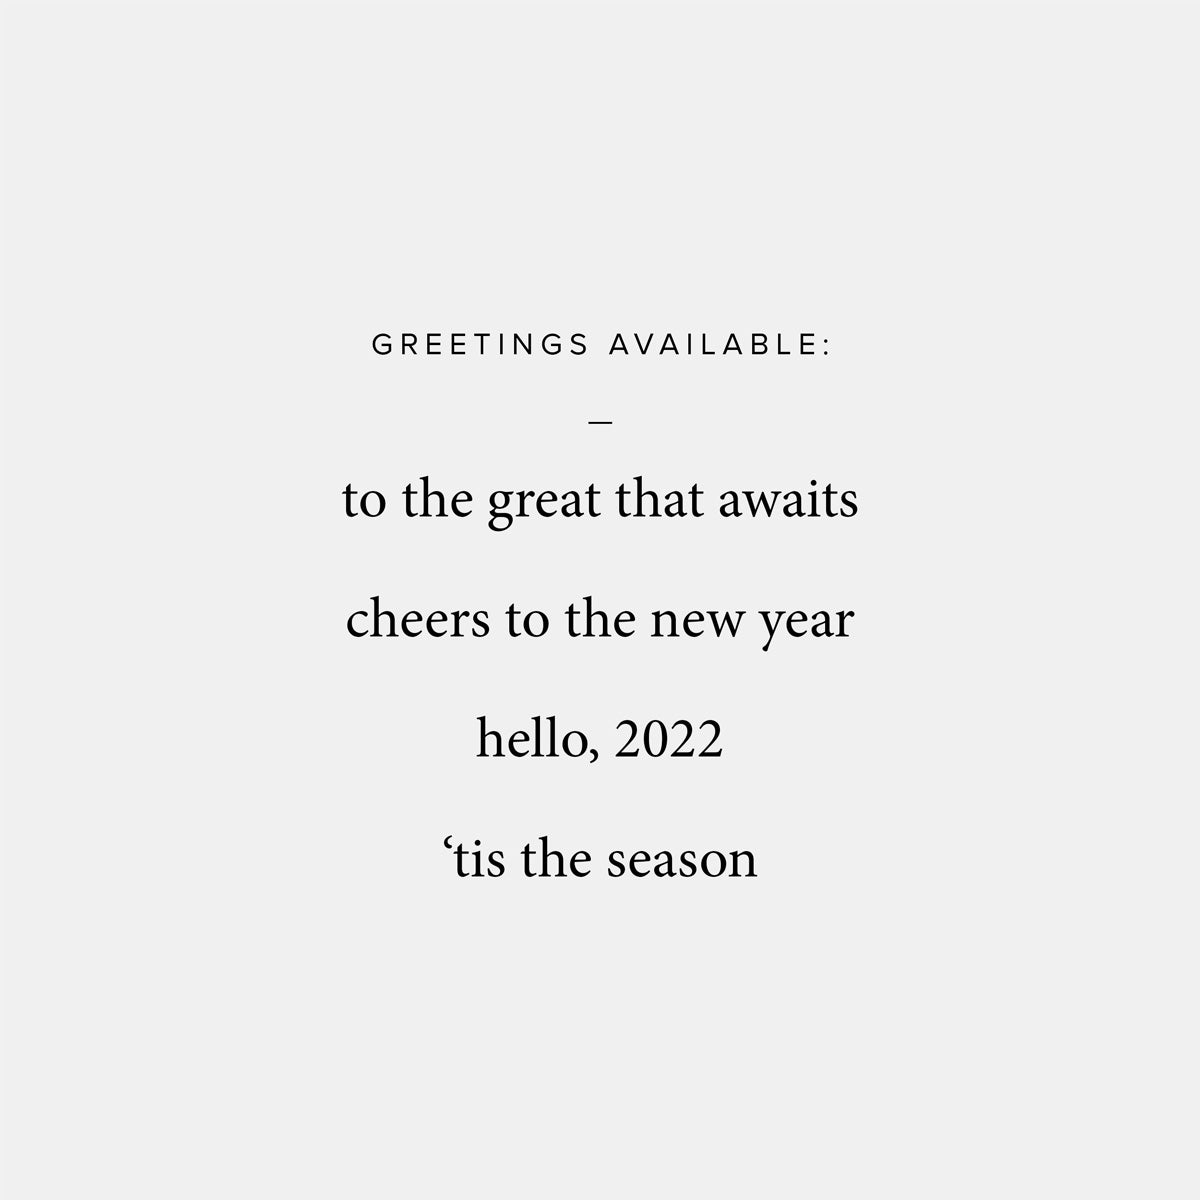 3-Image New Year Card